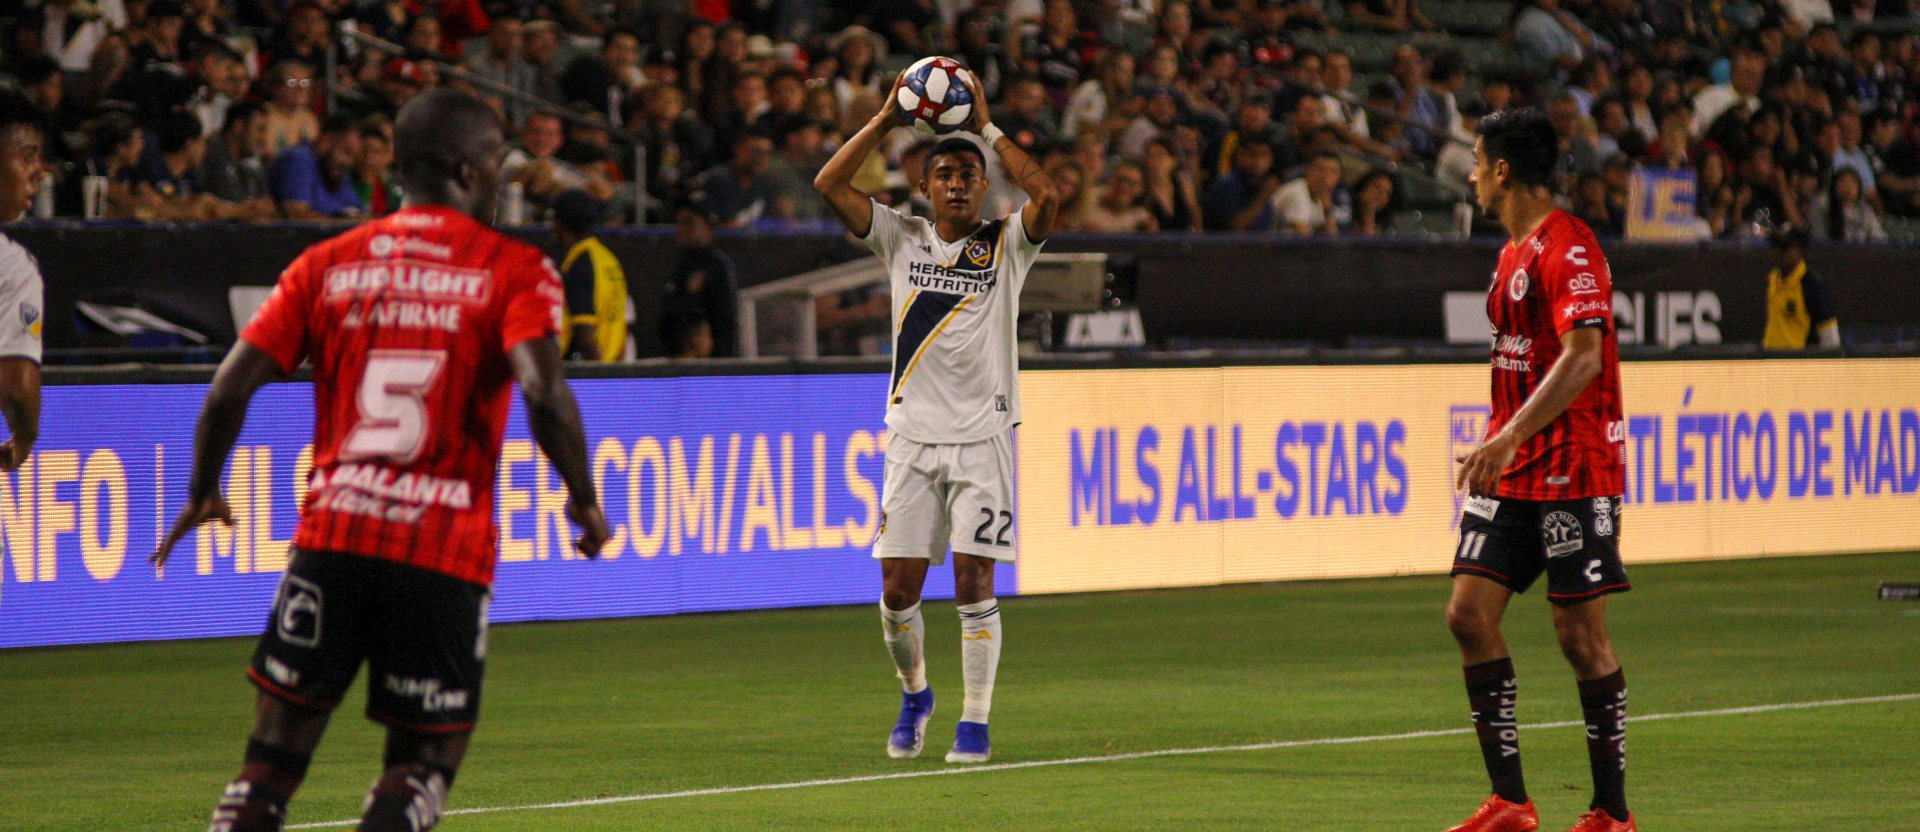 Julian Araujo takes a throw in playing for the LA Galaxy on 7.23.19 - Photo by Brittany Campbell